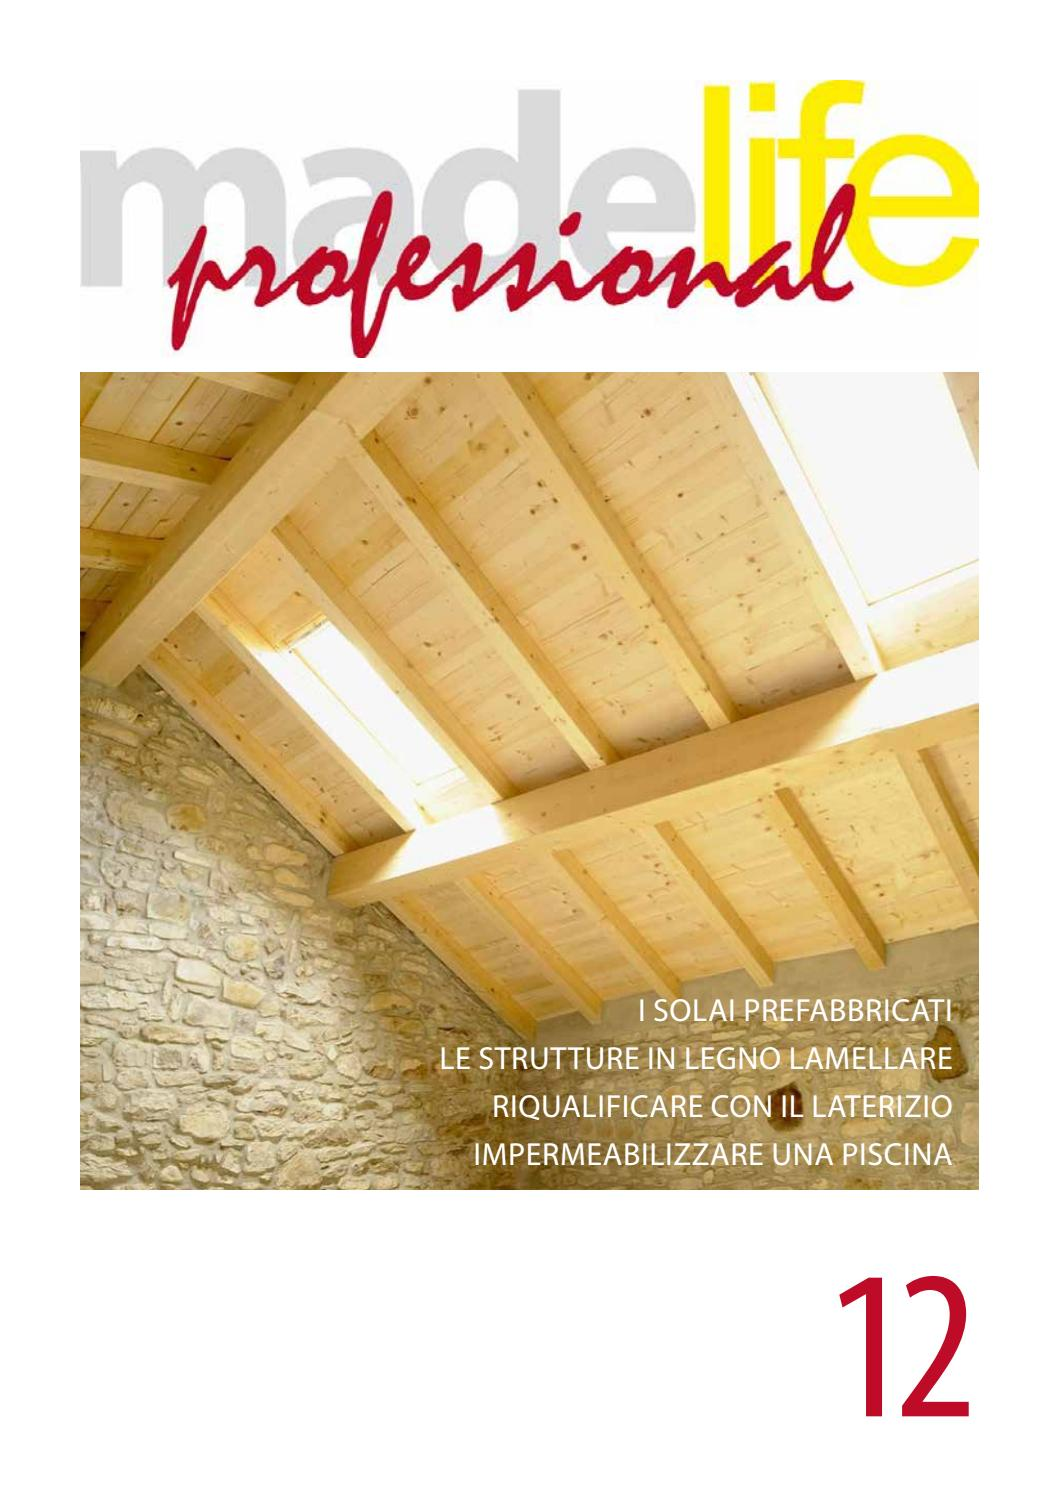 Solaio In Legno Lamellare Autoportante madelife professional - 12 by gruppo made - issuu